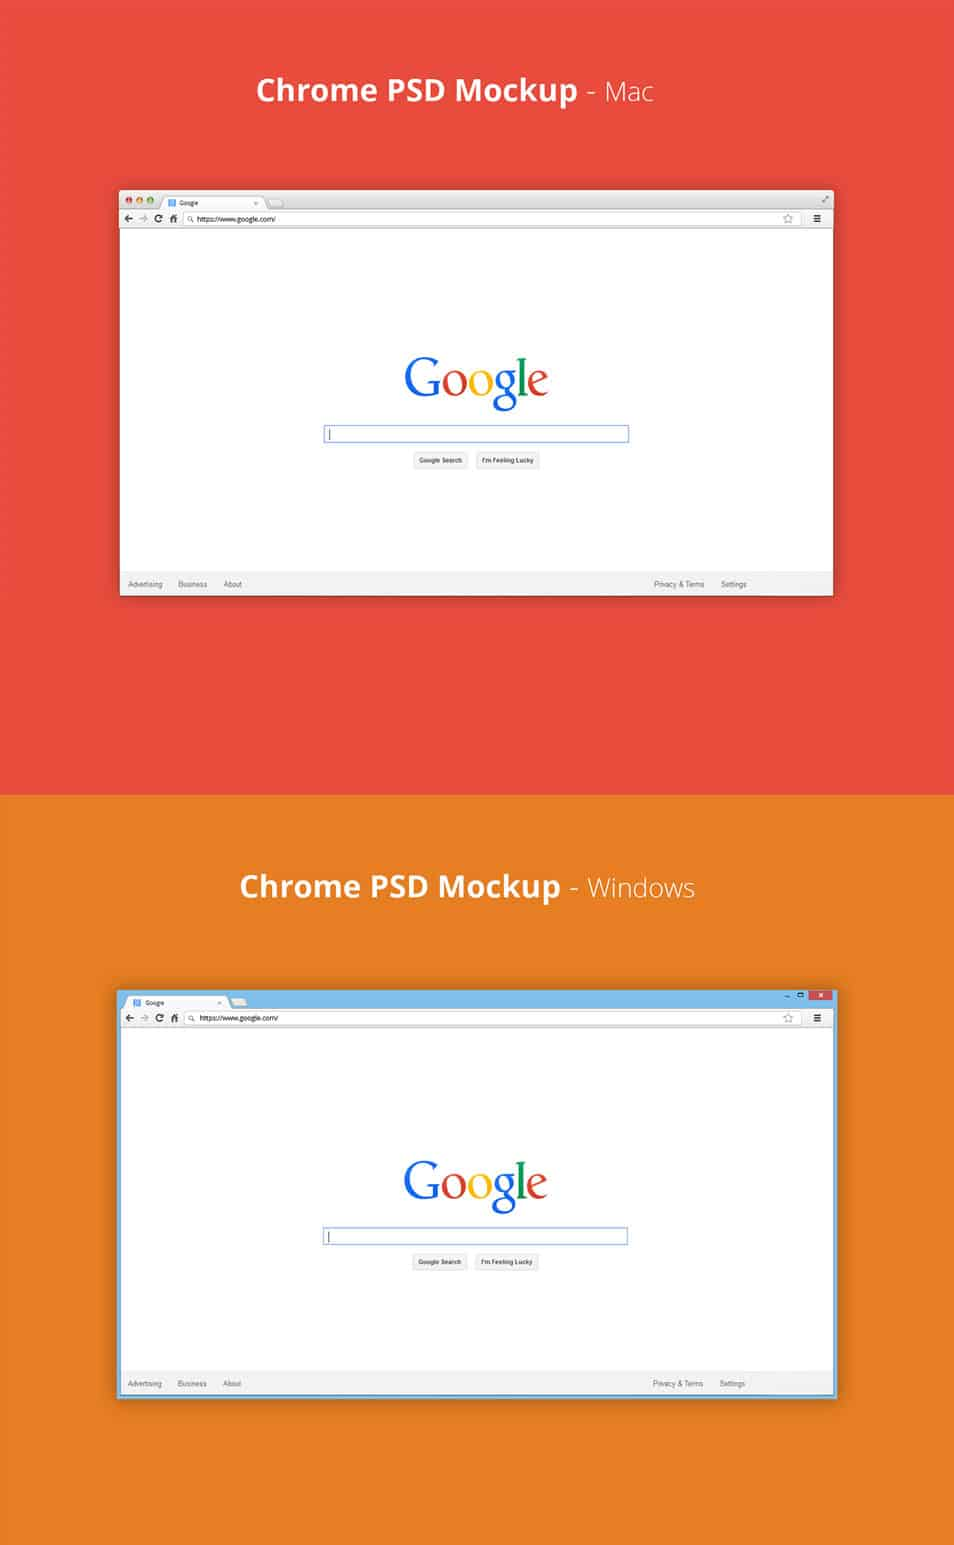 Chrome PSD Mockup – Mac & Windows